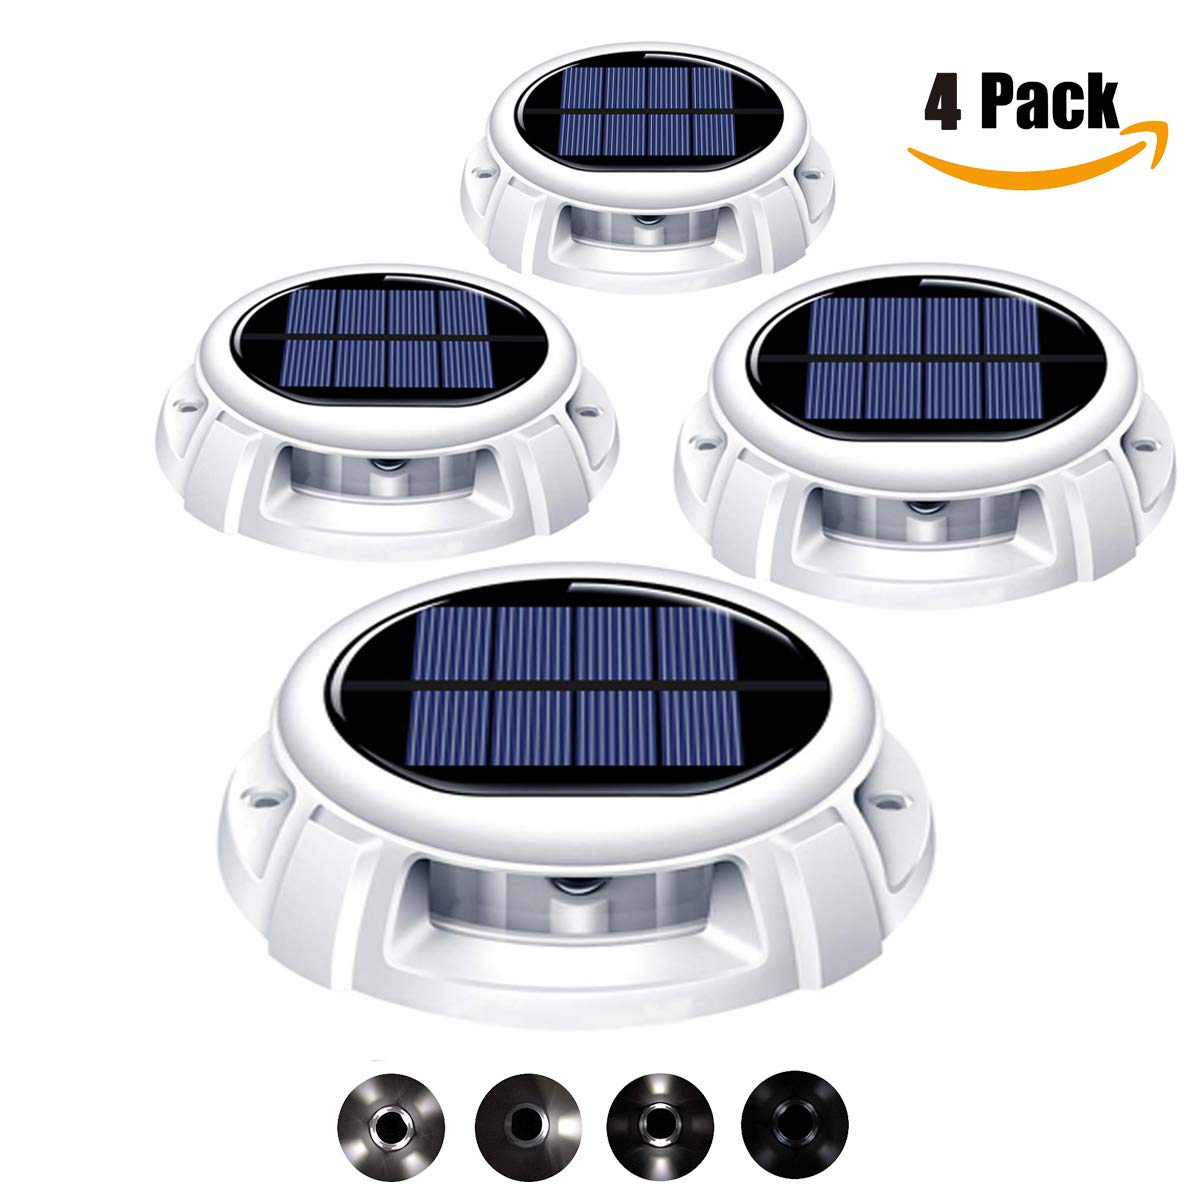 Mitcien 4 Pack Solar Deck Lights Outdoor Waterproof Driveway Dock Lights LED Solar Powered - Solar Ground Disk Lights for Pathway Step Stair Lawn Garden Yard In-Ground(White Color)